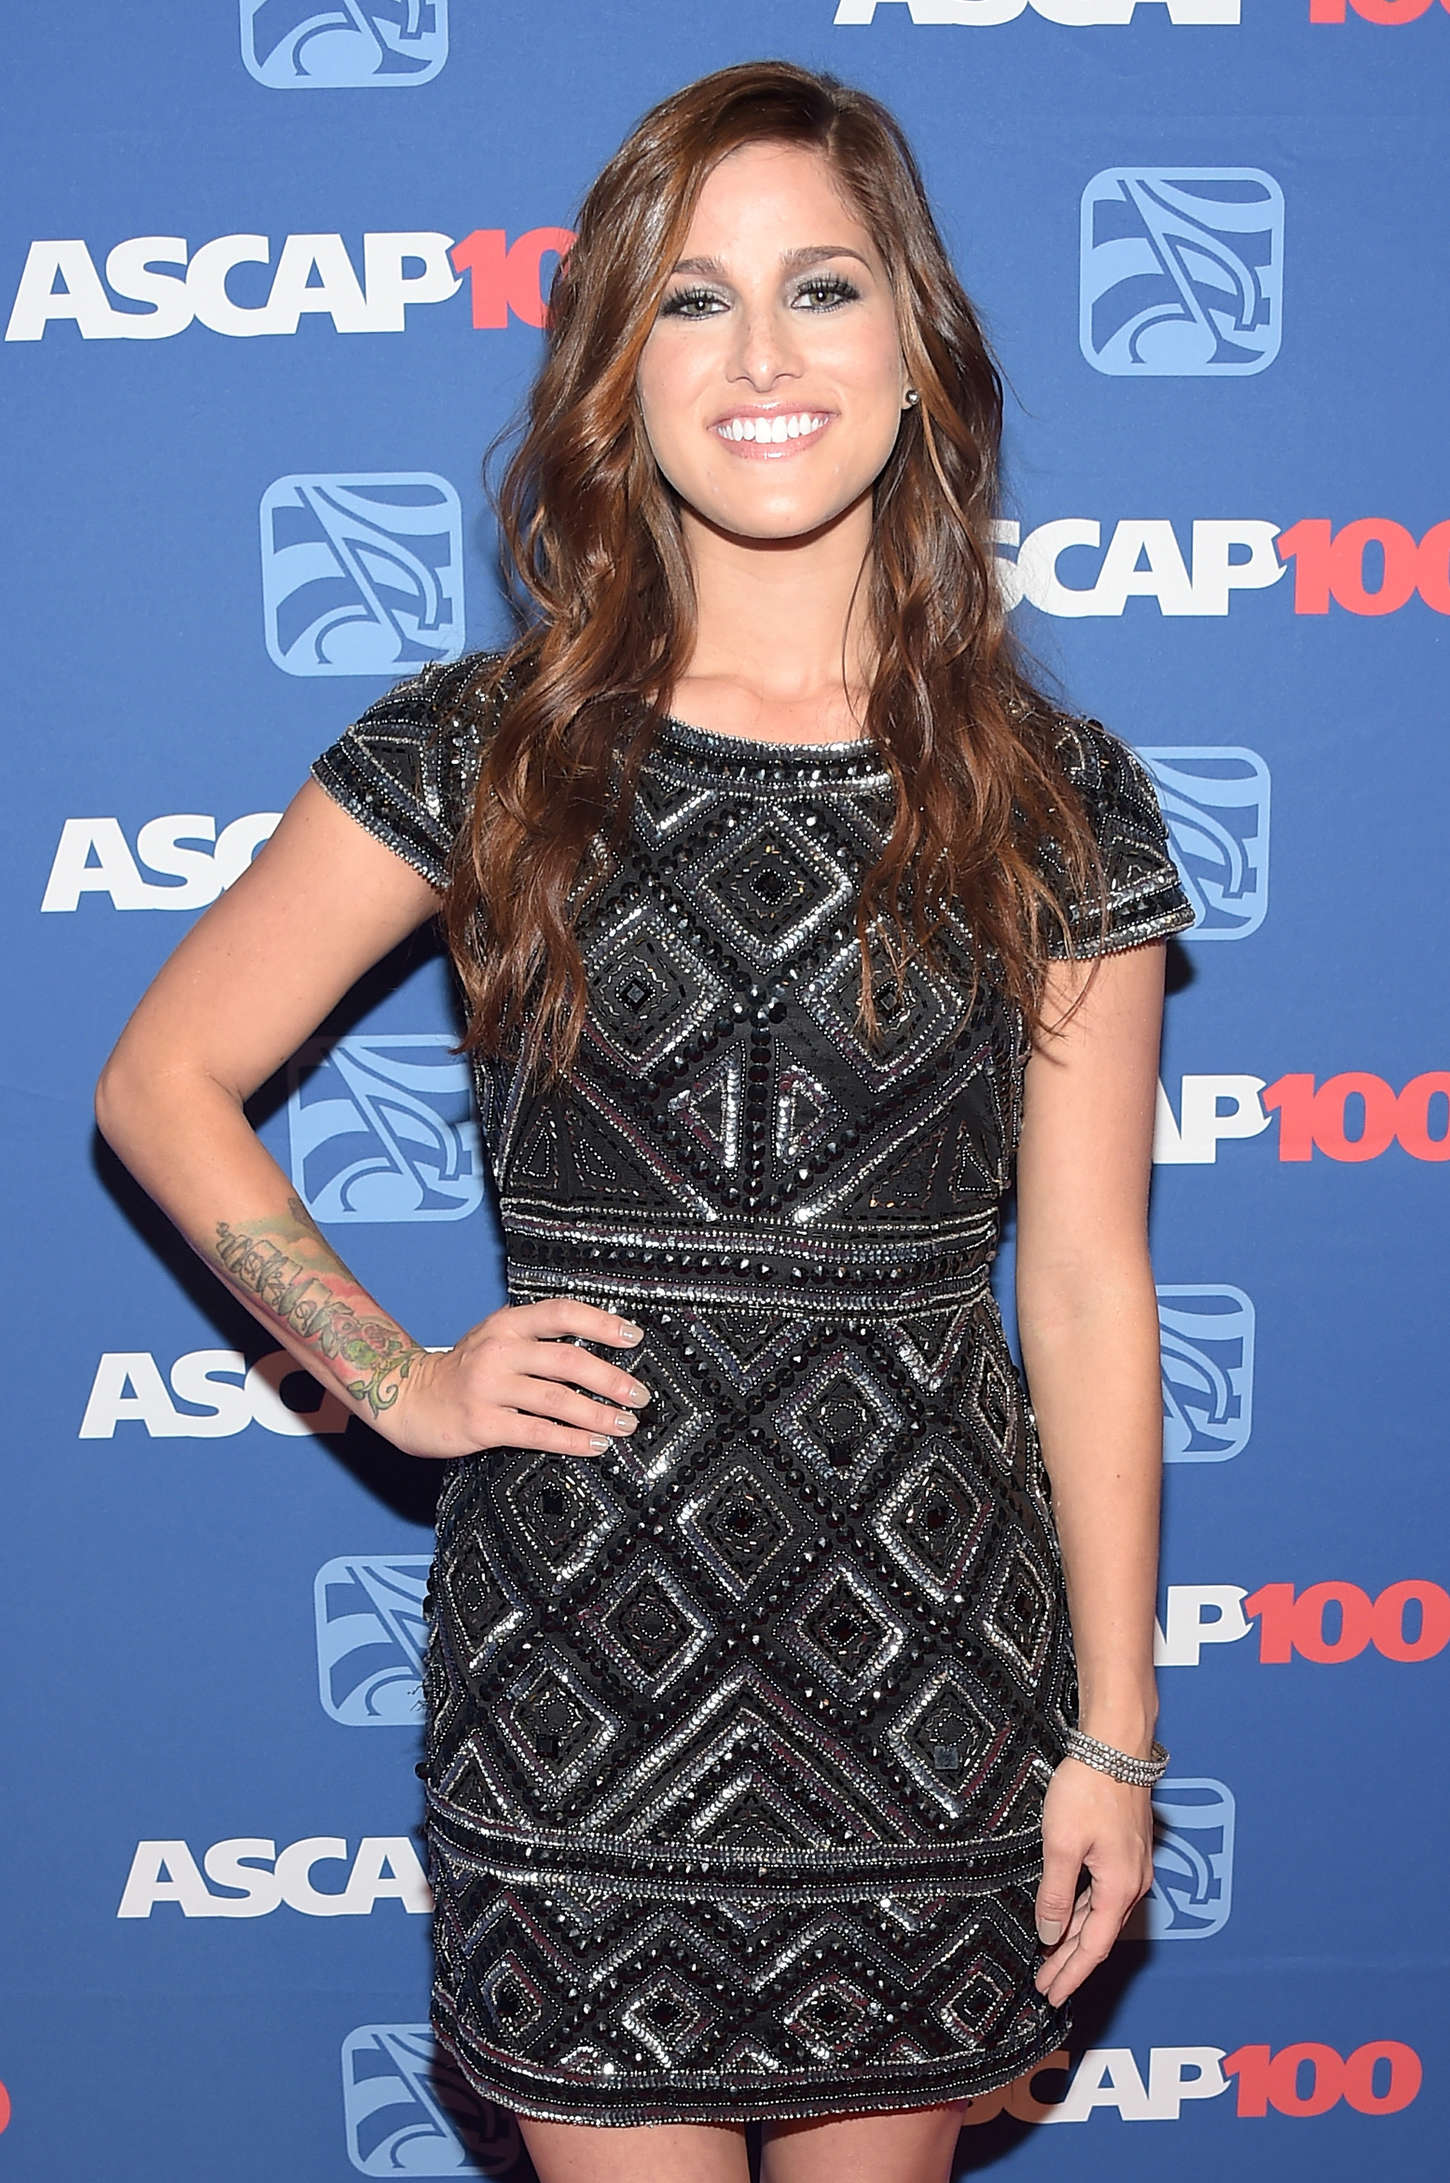 Cassadee Pope - 52nd Annual ASCAP Country Music Awards in Nashville